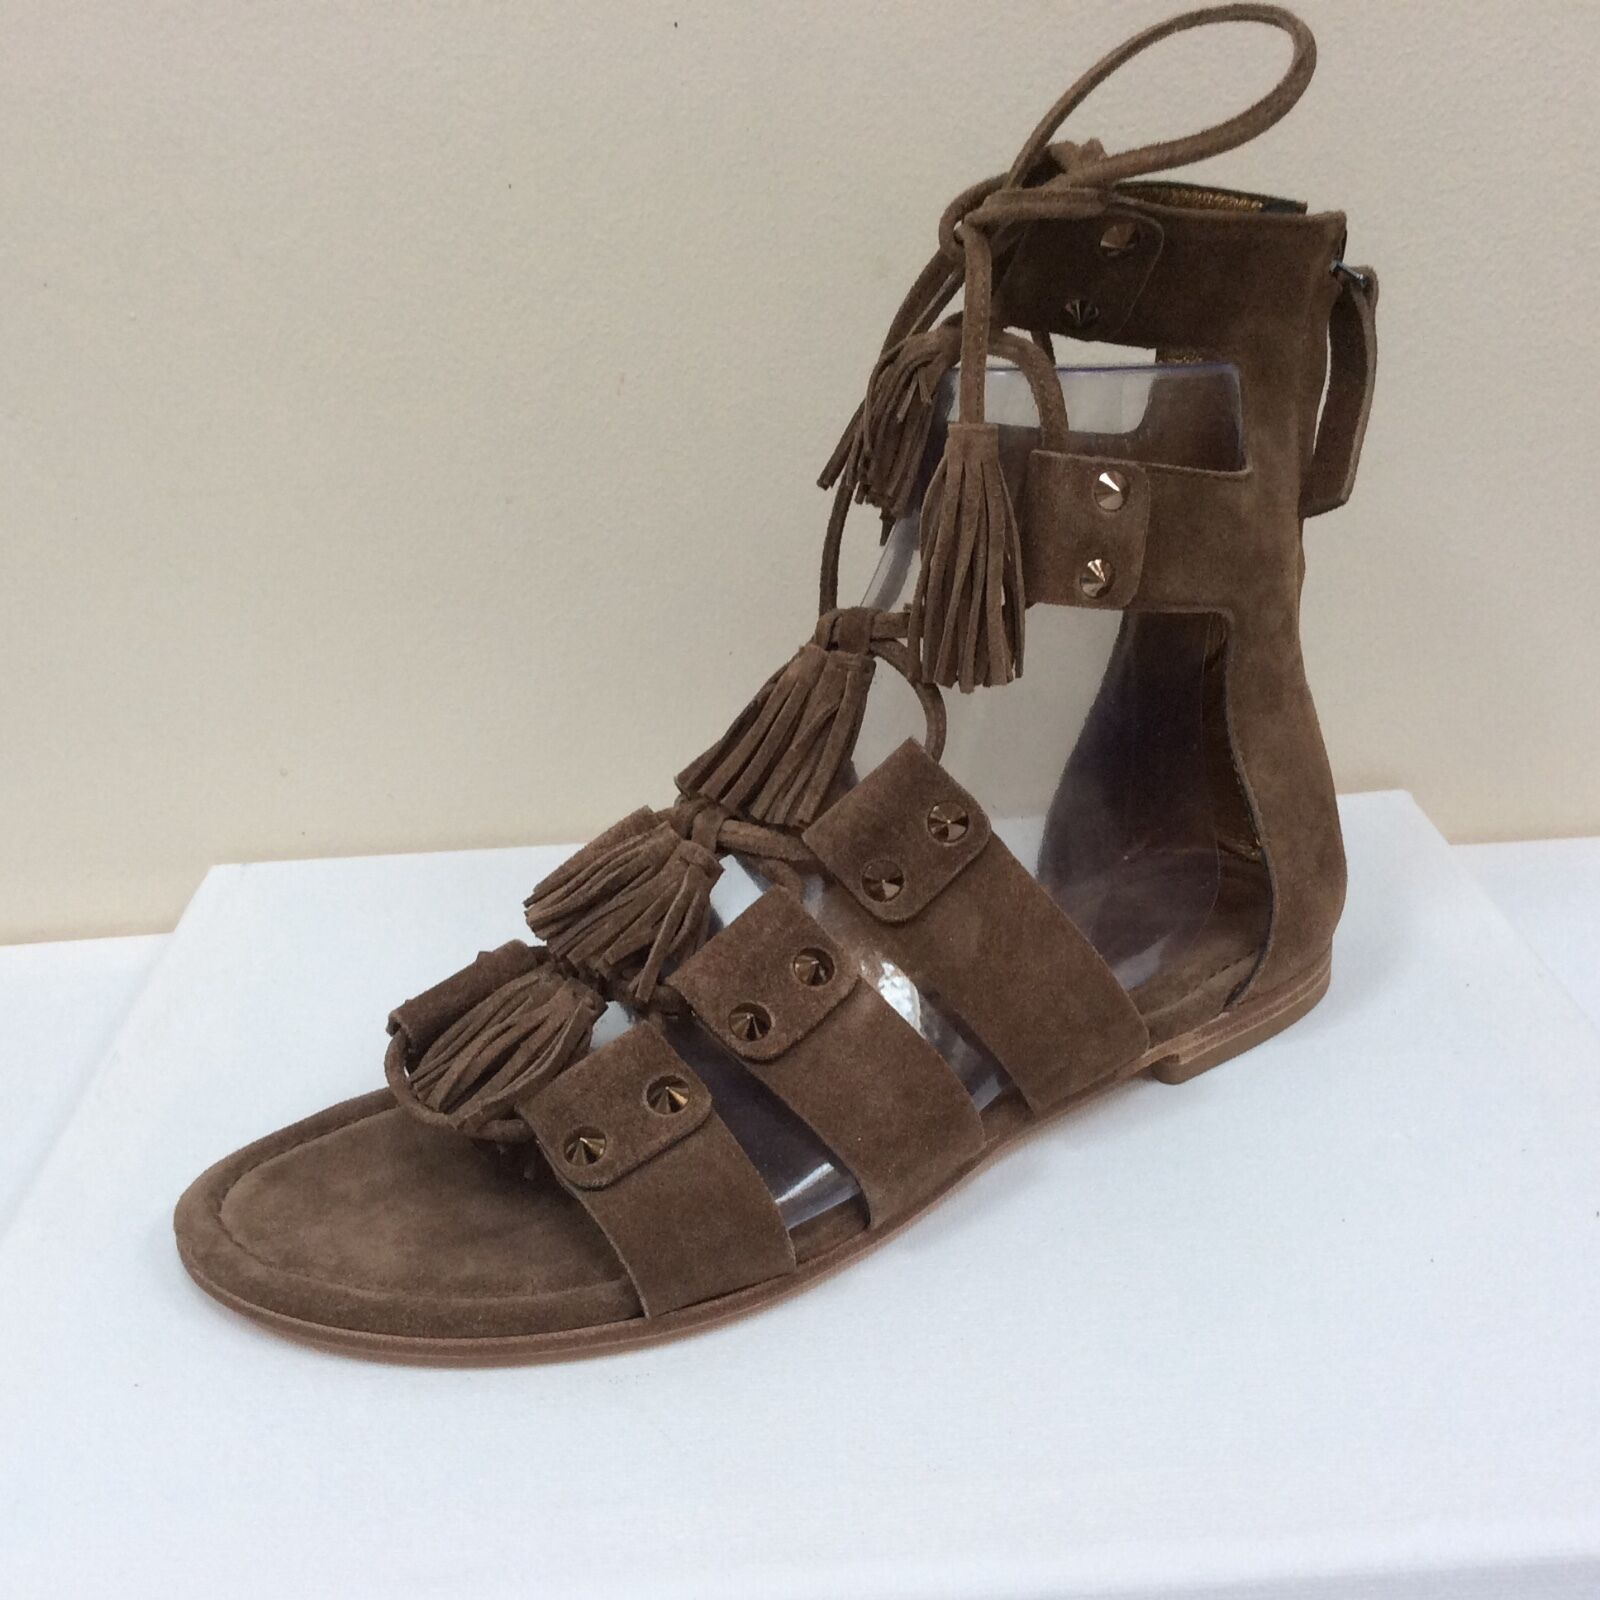 K&S tan suede gladiators with tassel detail, UK 5.5 EU 38.5,   BNWB